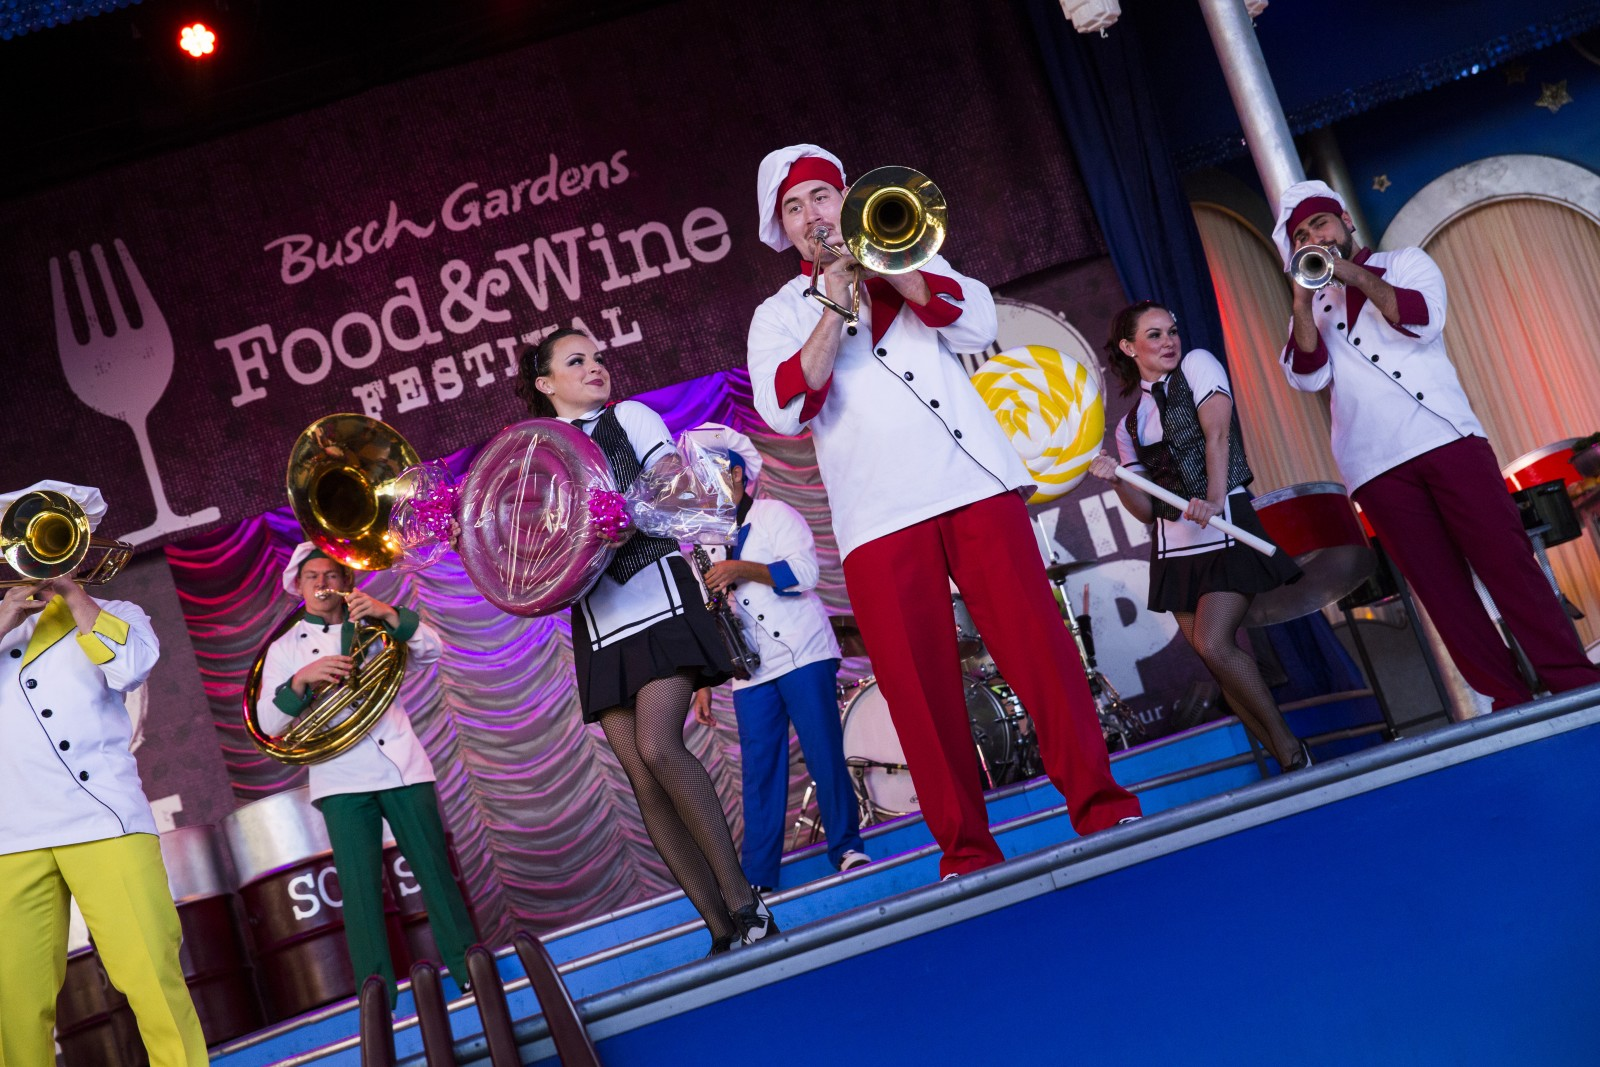 Busch Gardens Tampa Food & Wine Festival Entertainment